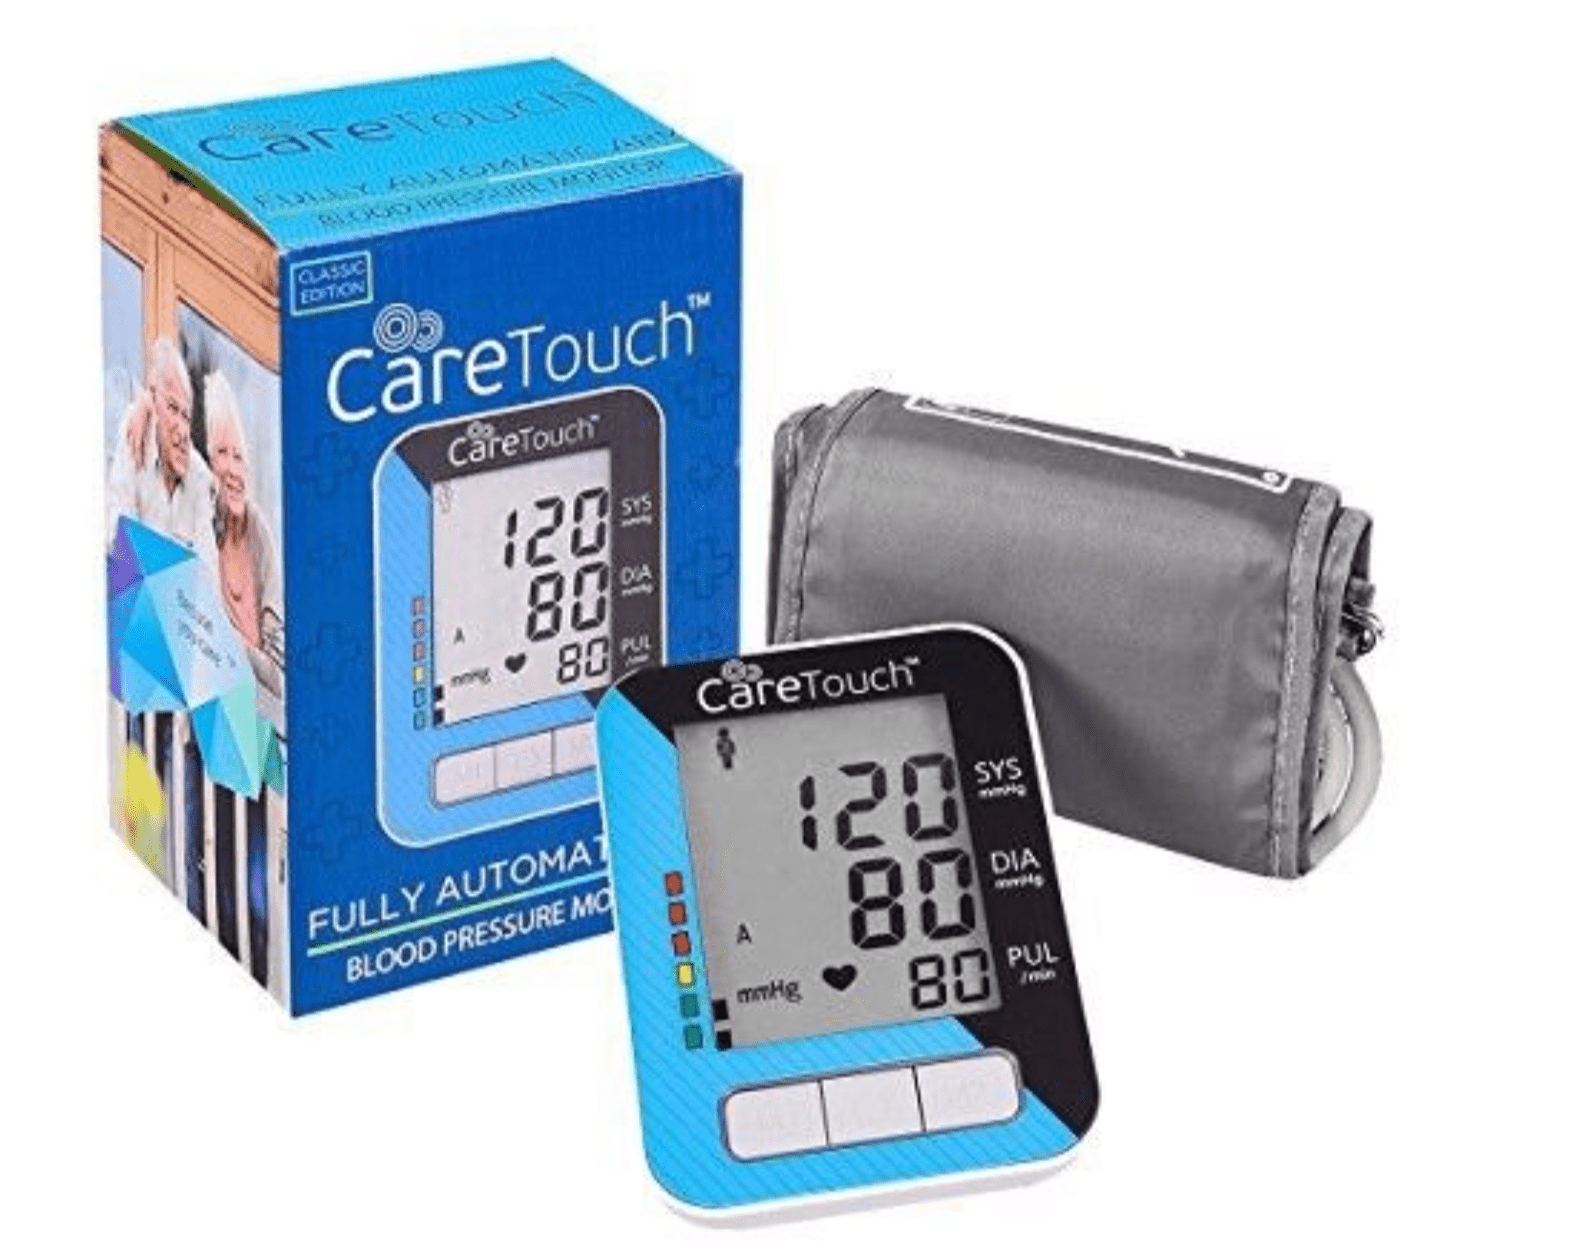 Best Home Blood Pressure Monitor 2019 The 6 Best Blood Pressure Monitors of 2019